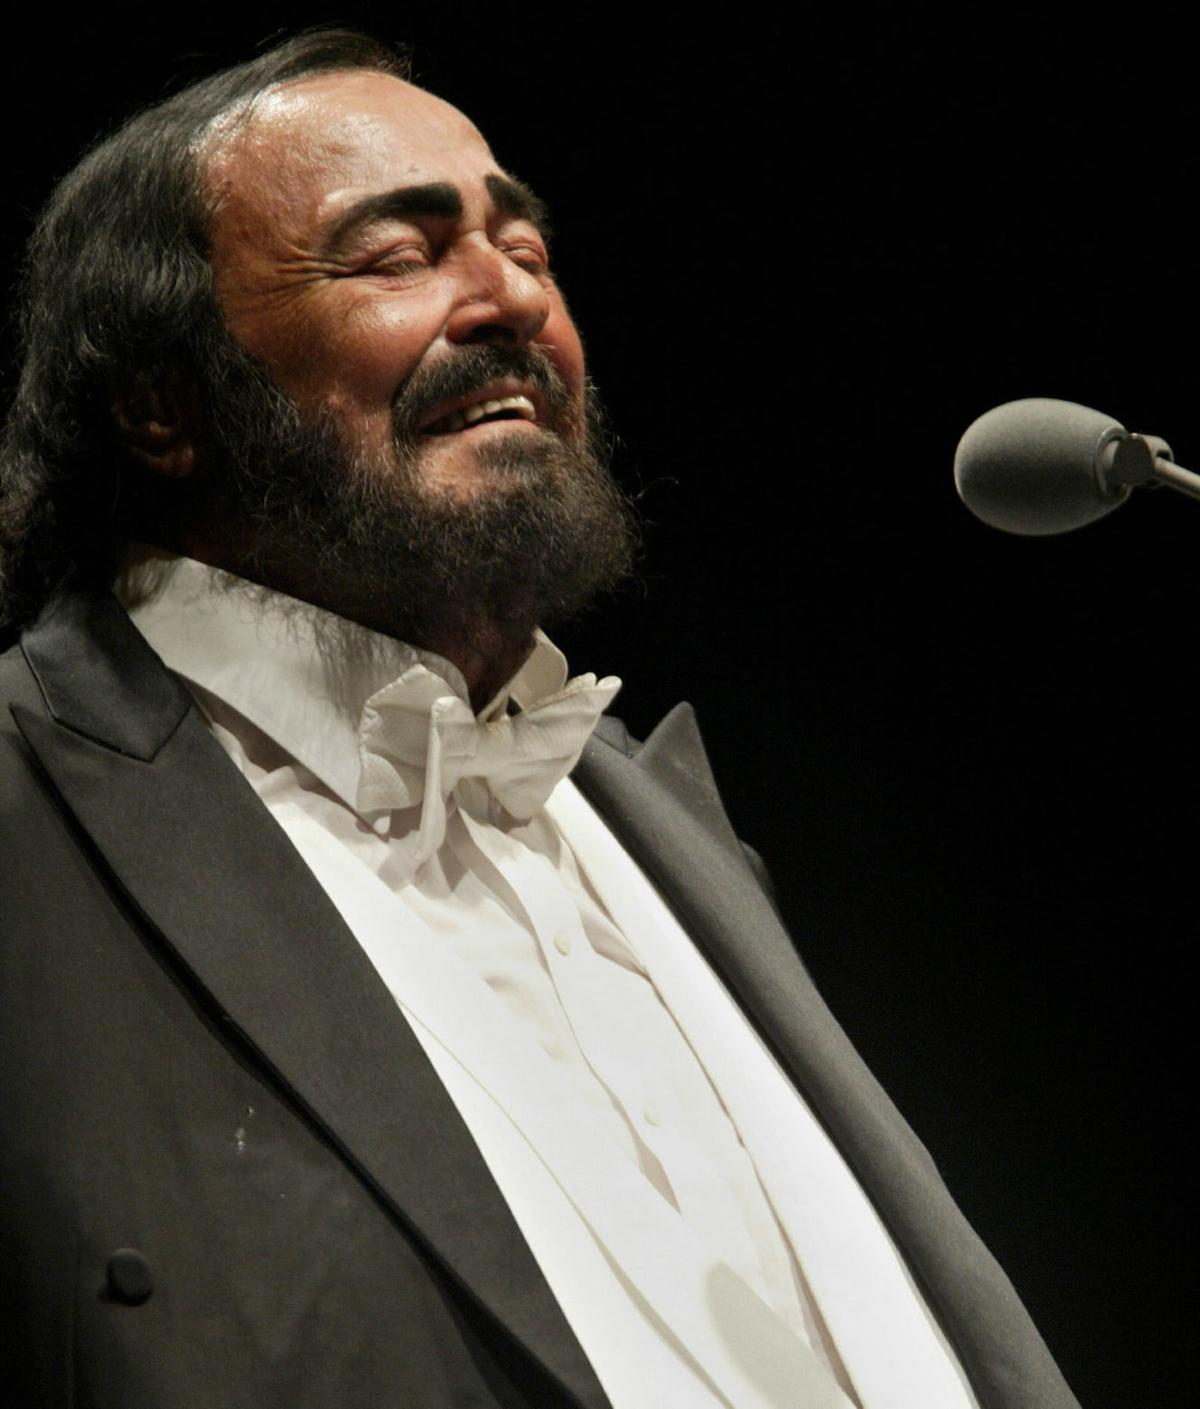 FILES-ENTERTAINMENT-ITALY-MUSIC-PEOPLE-PAVAROTTI-DEAD